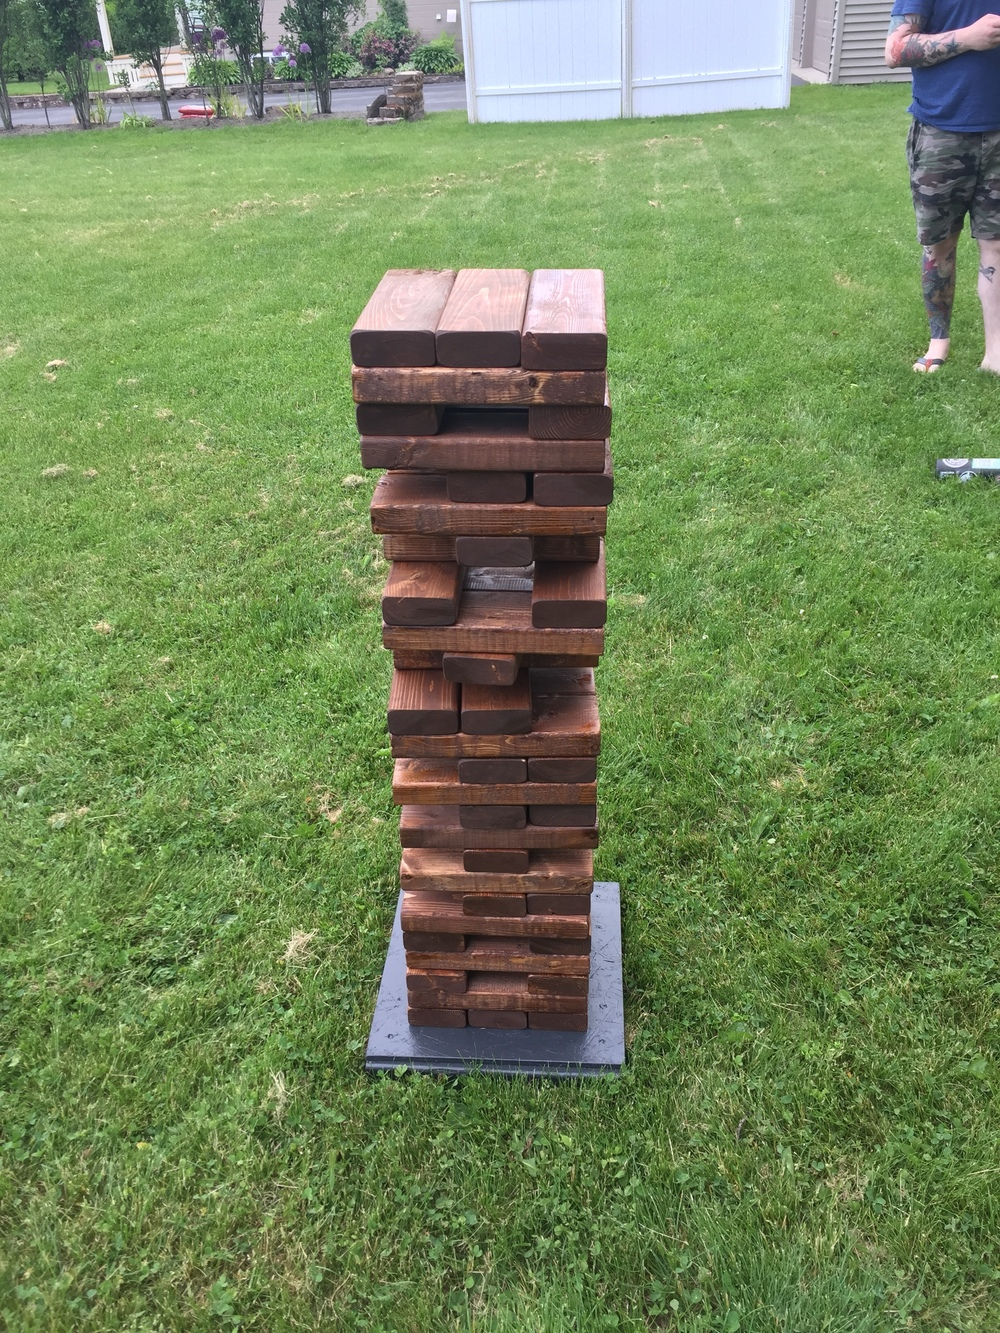 Featured Rental: Royal Walnut Stained Lawn Stacking Blocks Game - $60 Fri-Sun